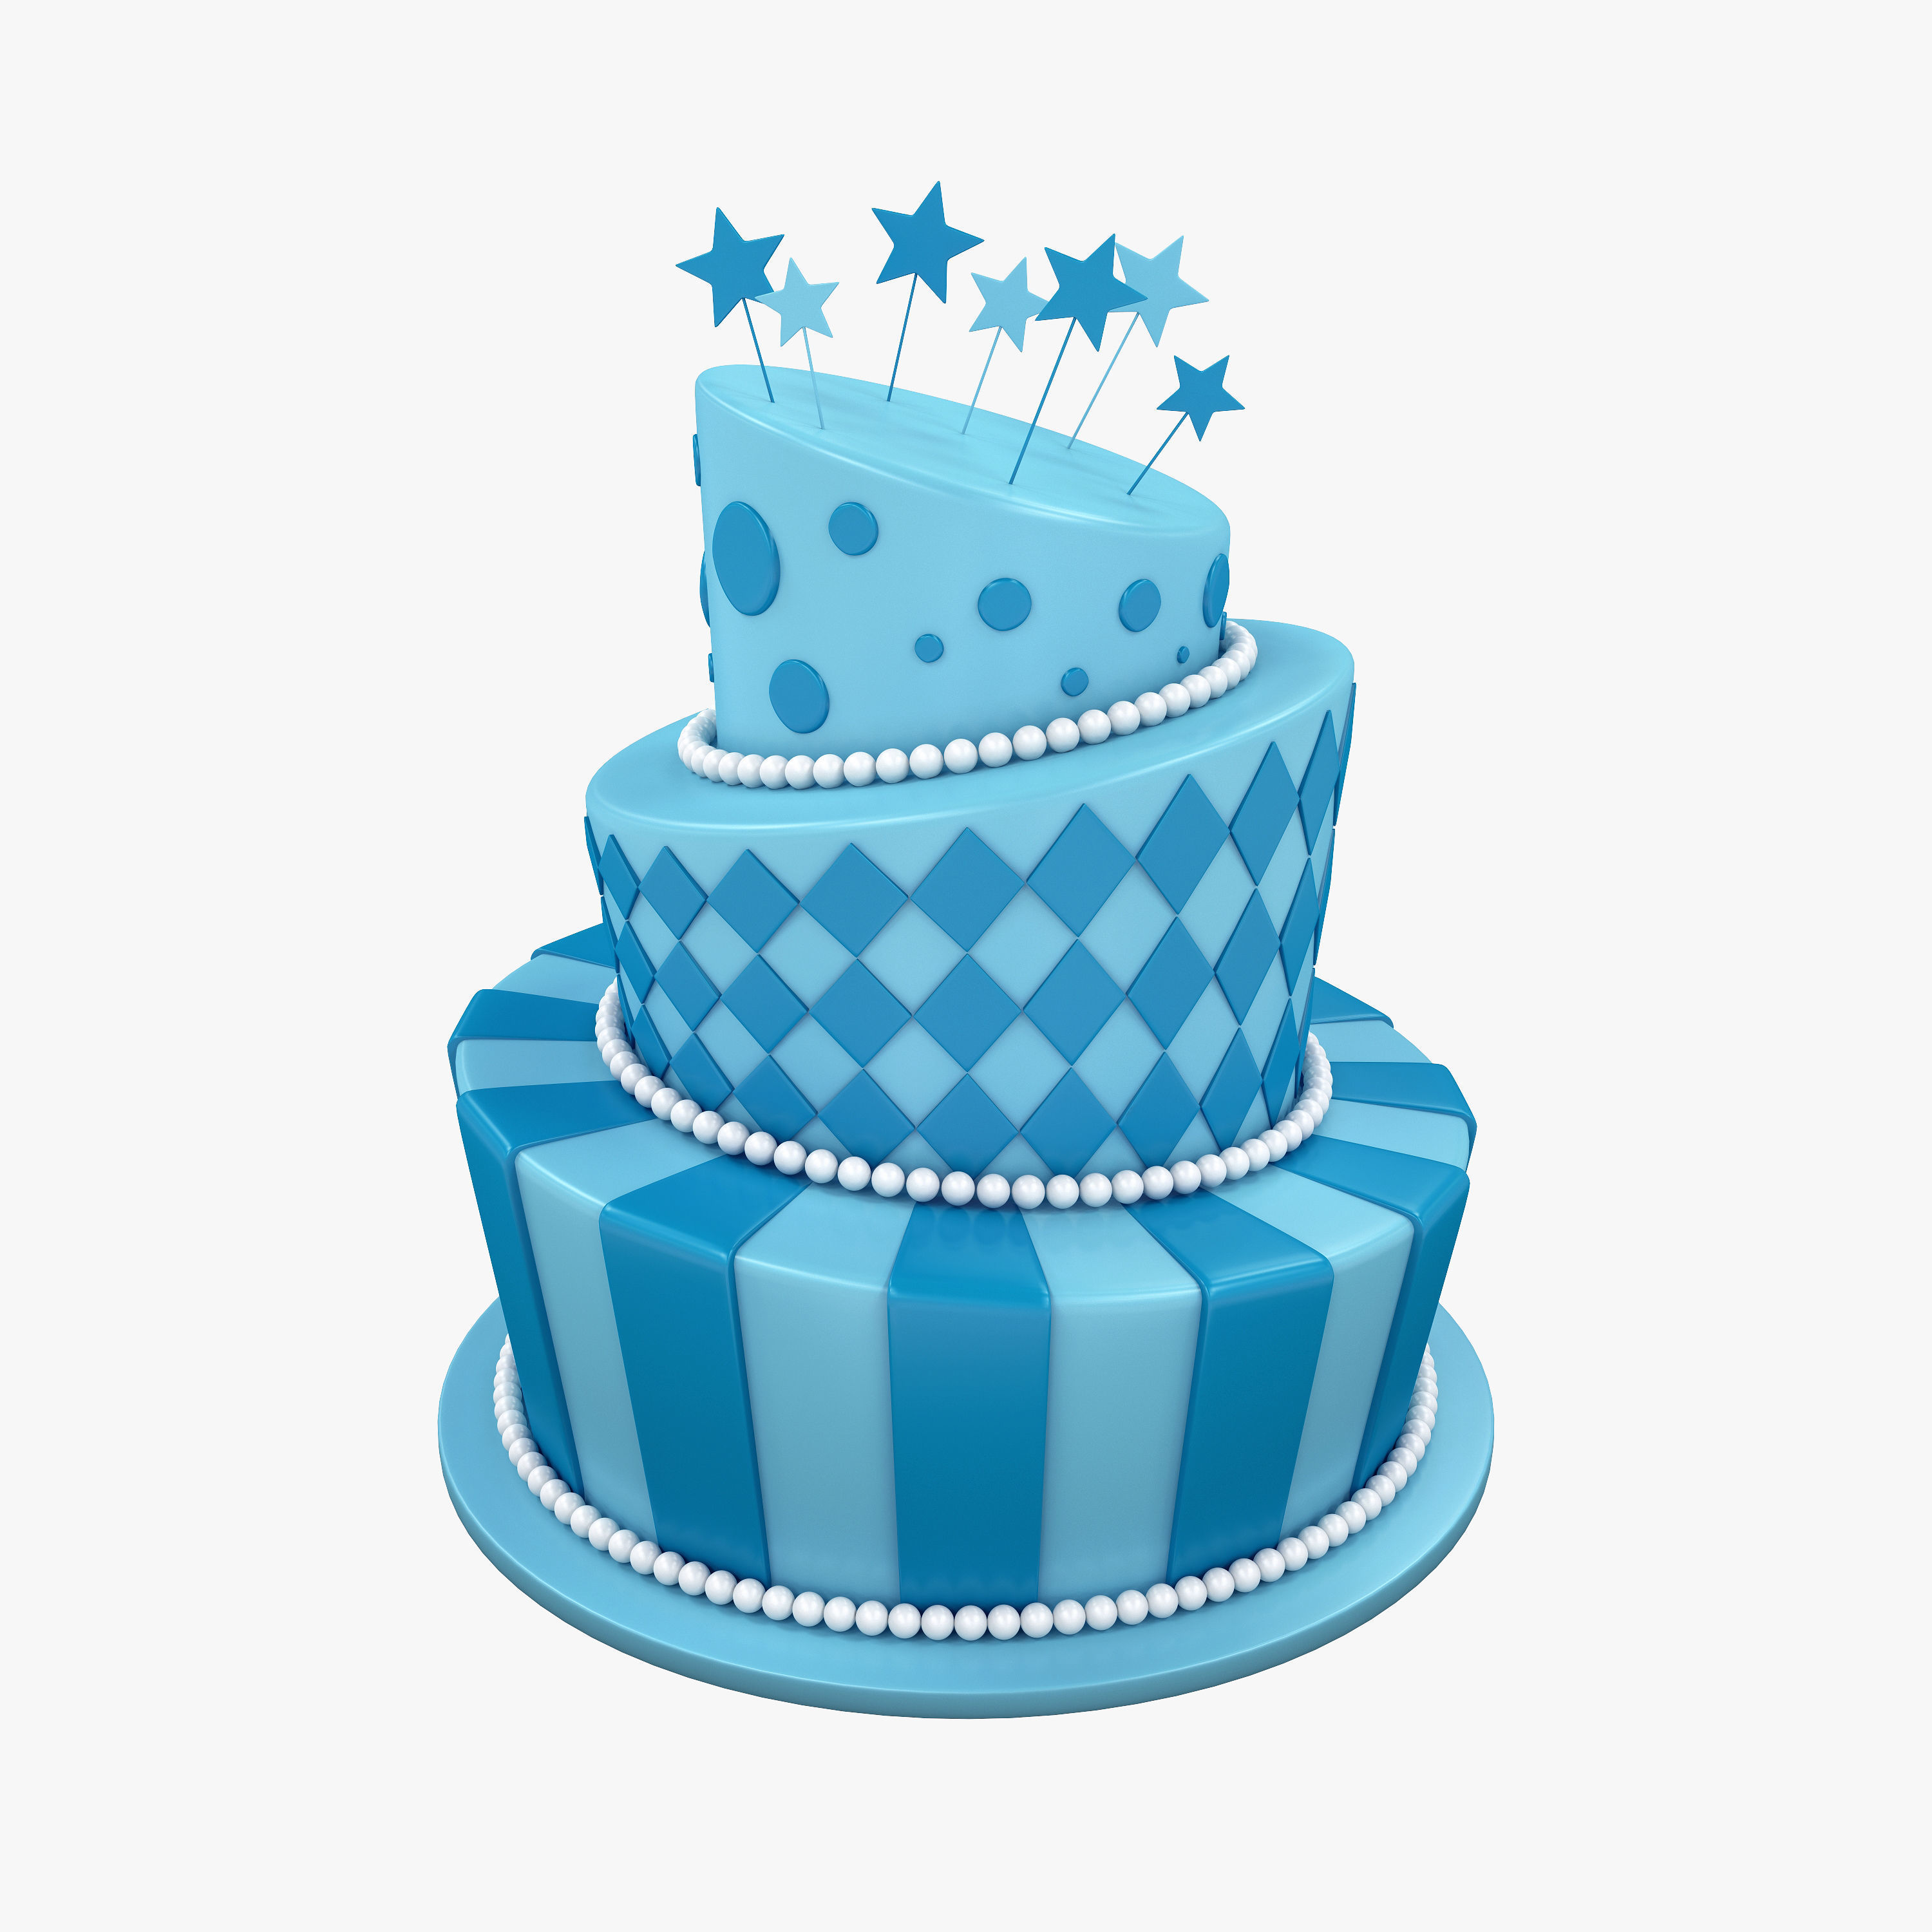 Birthday Cake Confectionery 3d Model Cgtrader